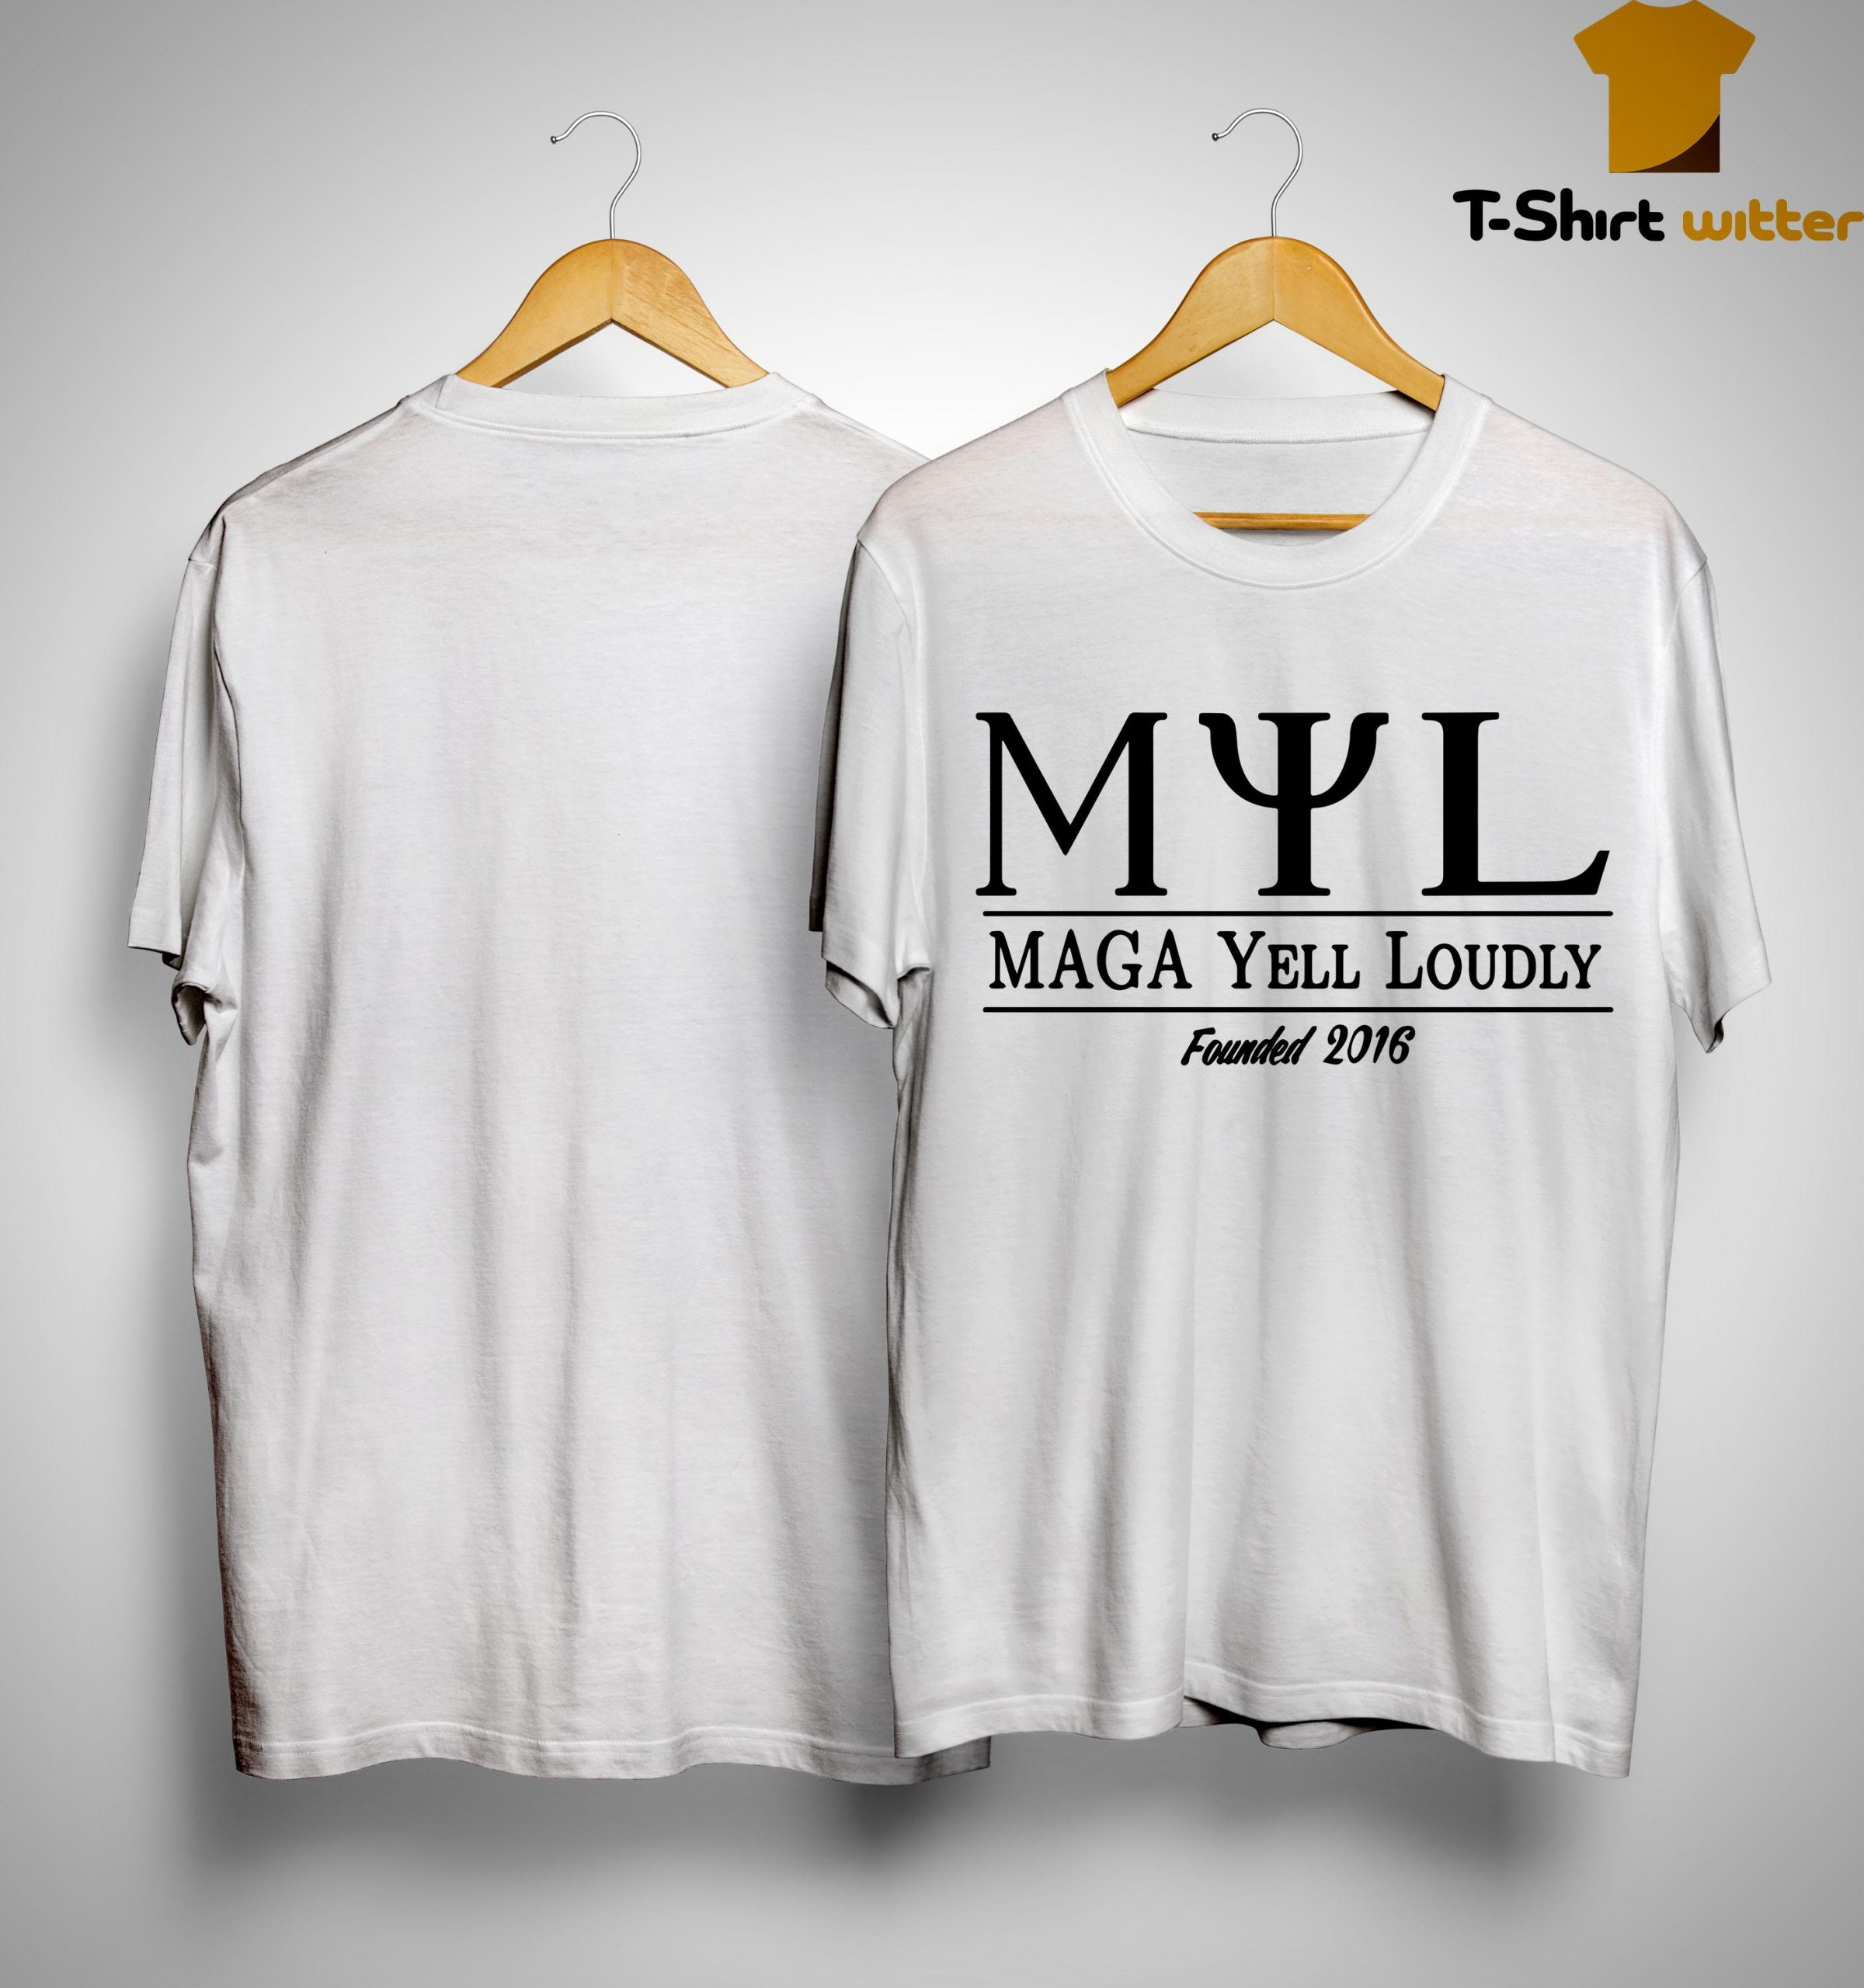 Myl Maga Yell Loudly Founded 2016 Shirt